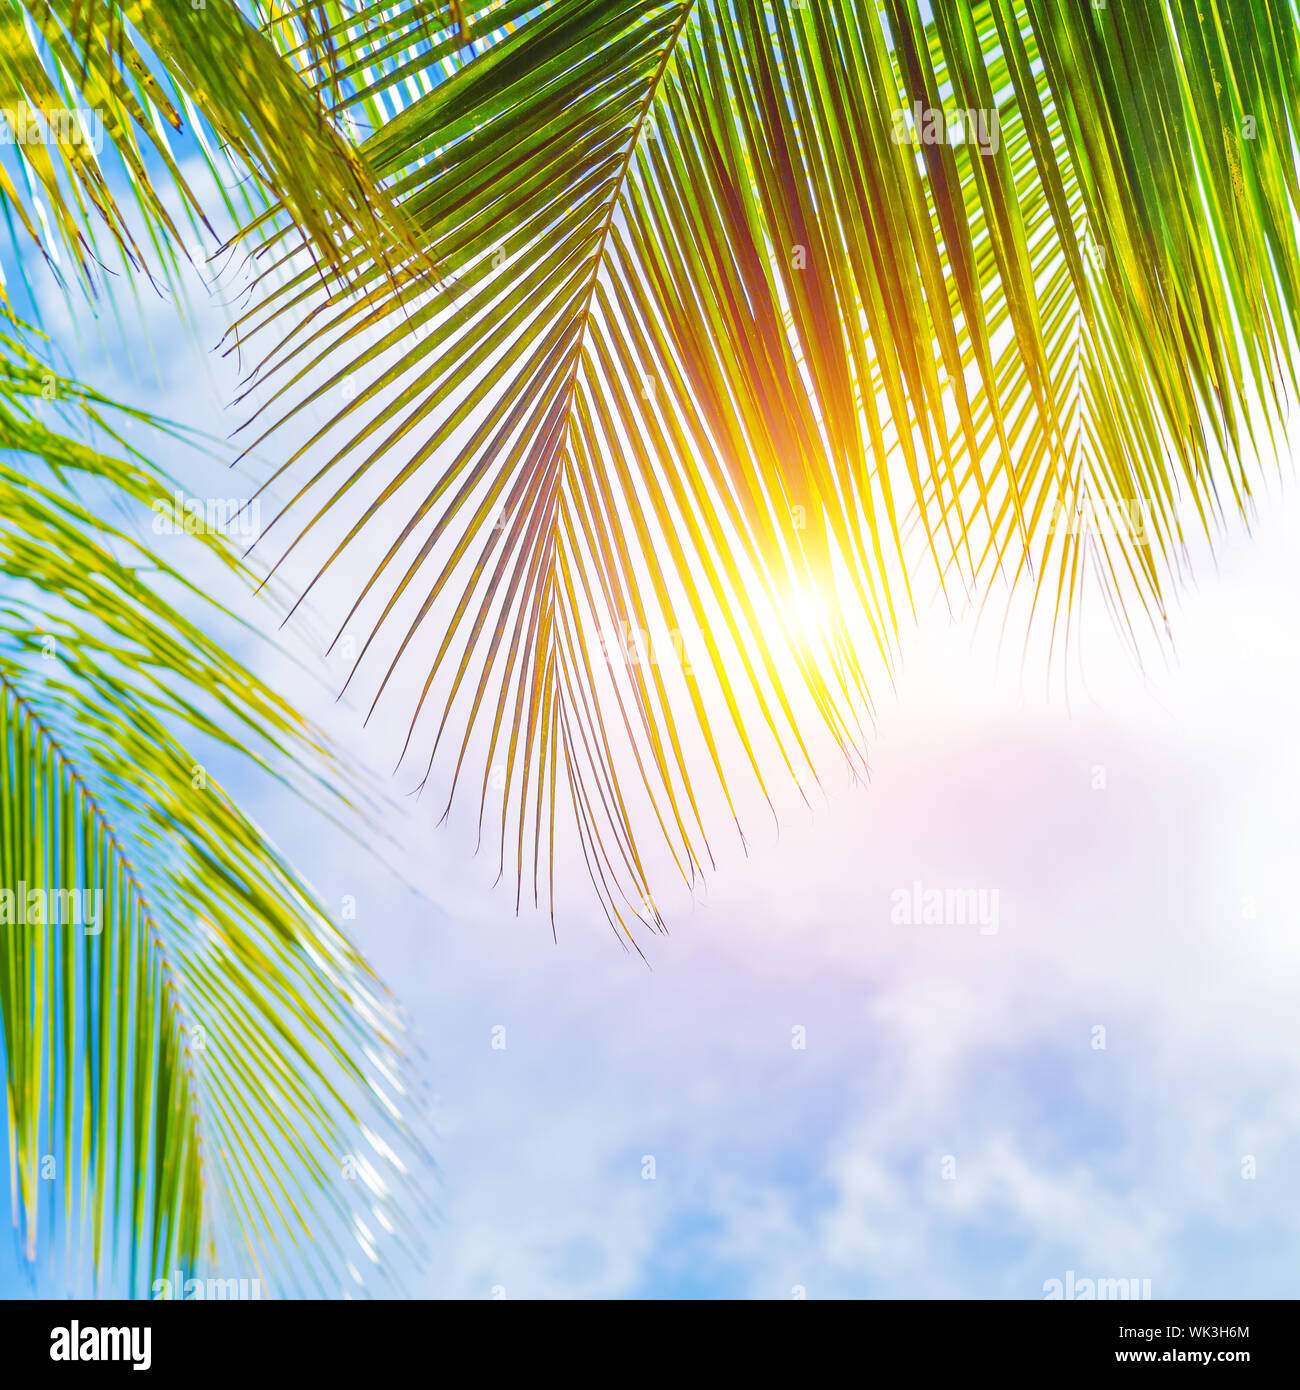 Fresh Green Palm Tree Leaves Border On Blue Cloudy Sky Background Sunny Day Beautiful Natural Wallpaper Summer Holidays Concept Stock Photo Alamy